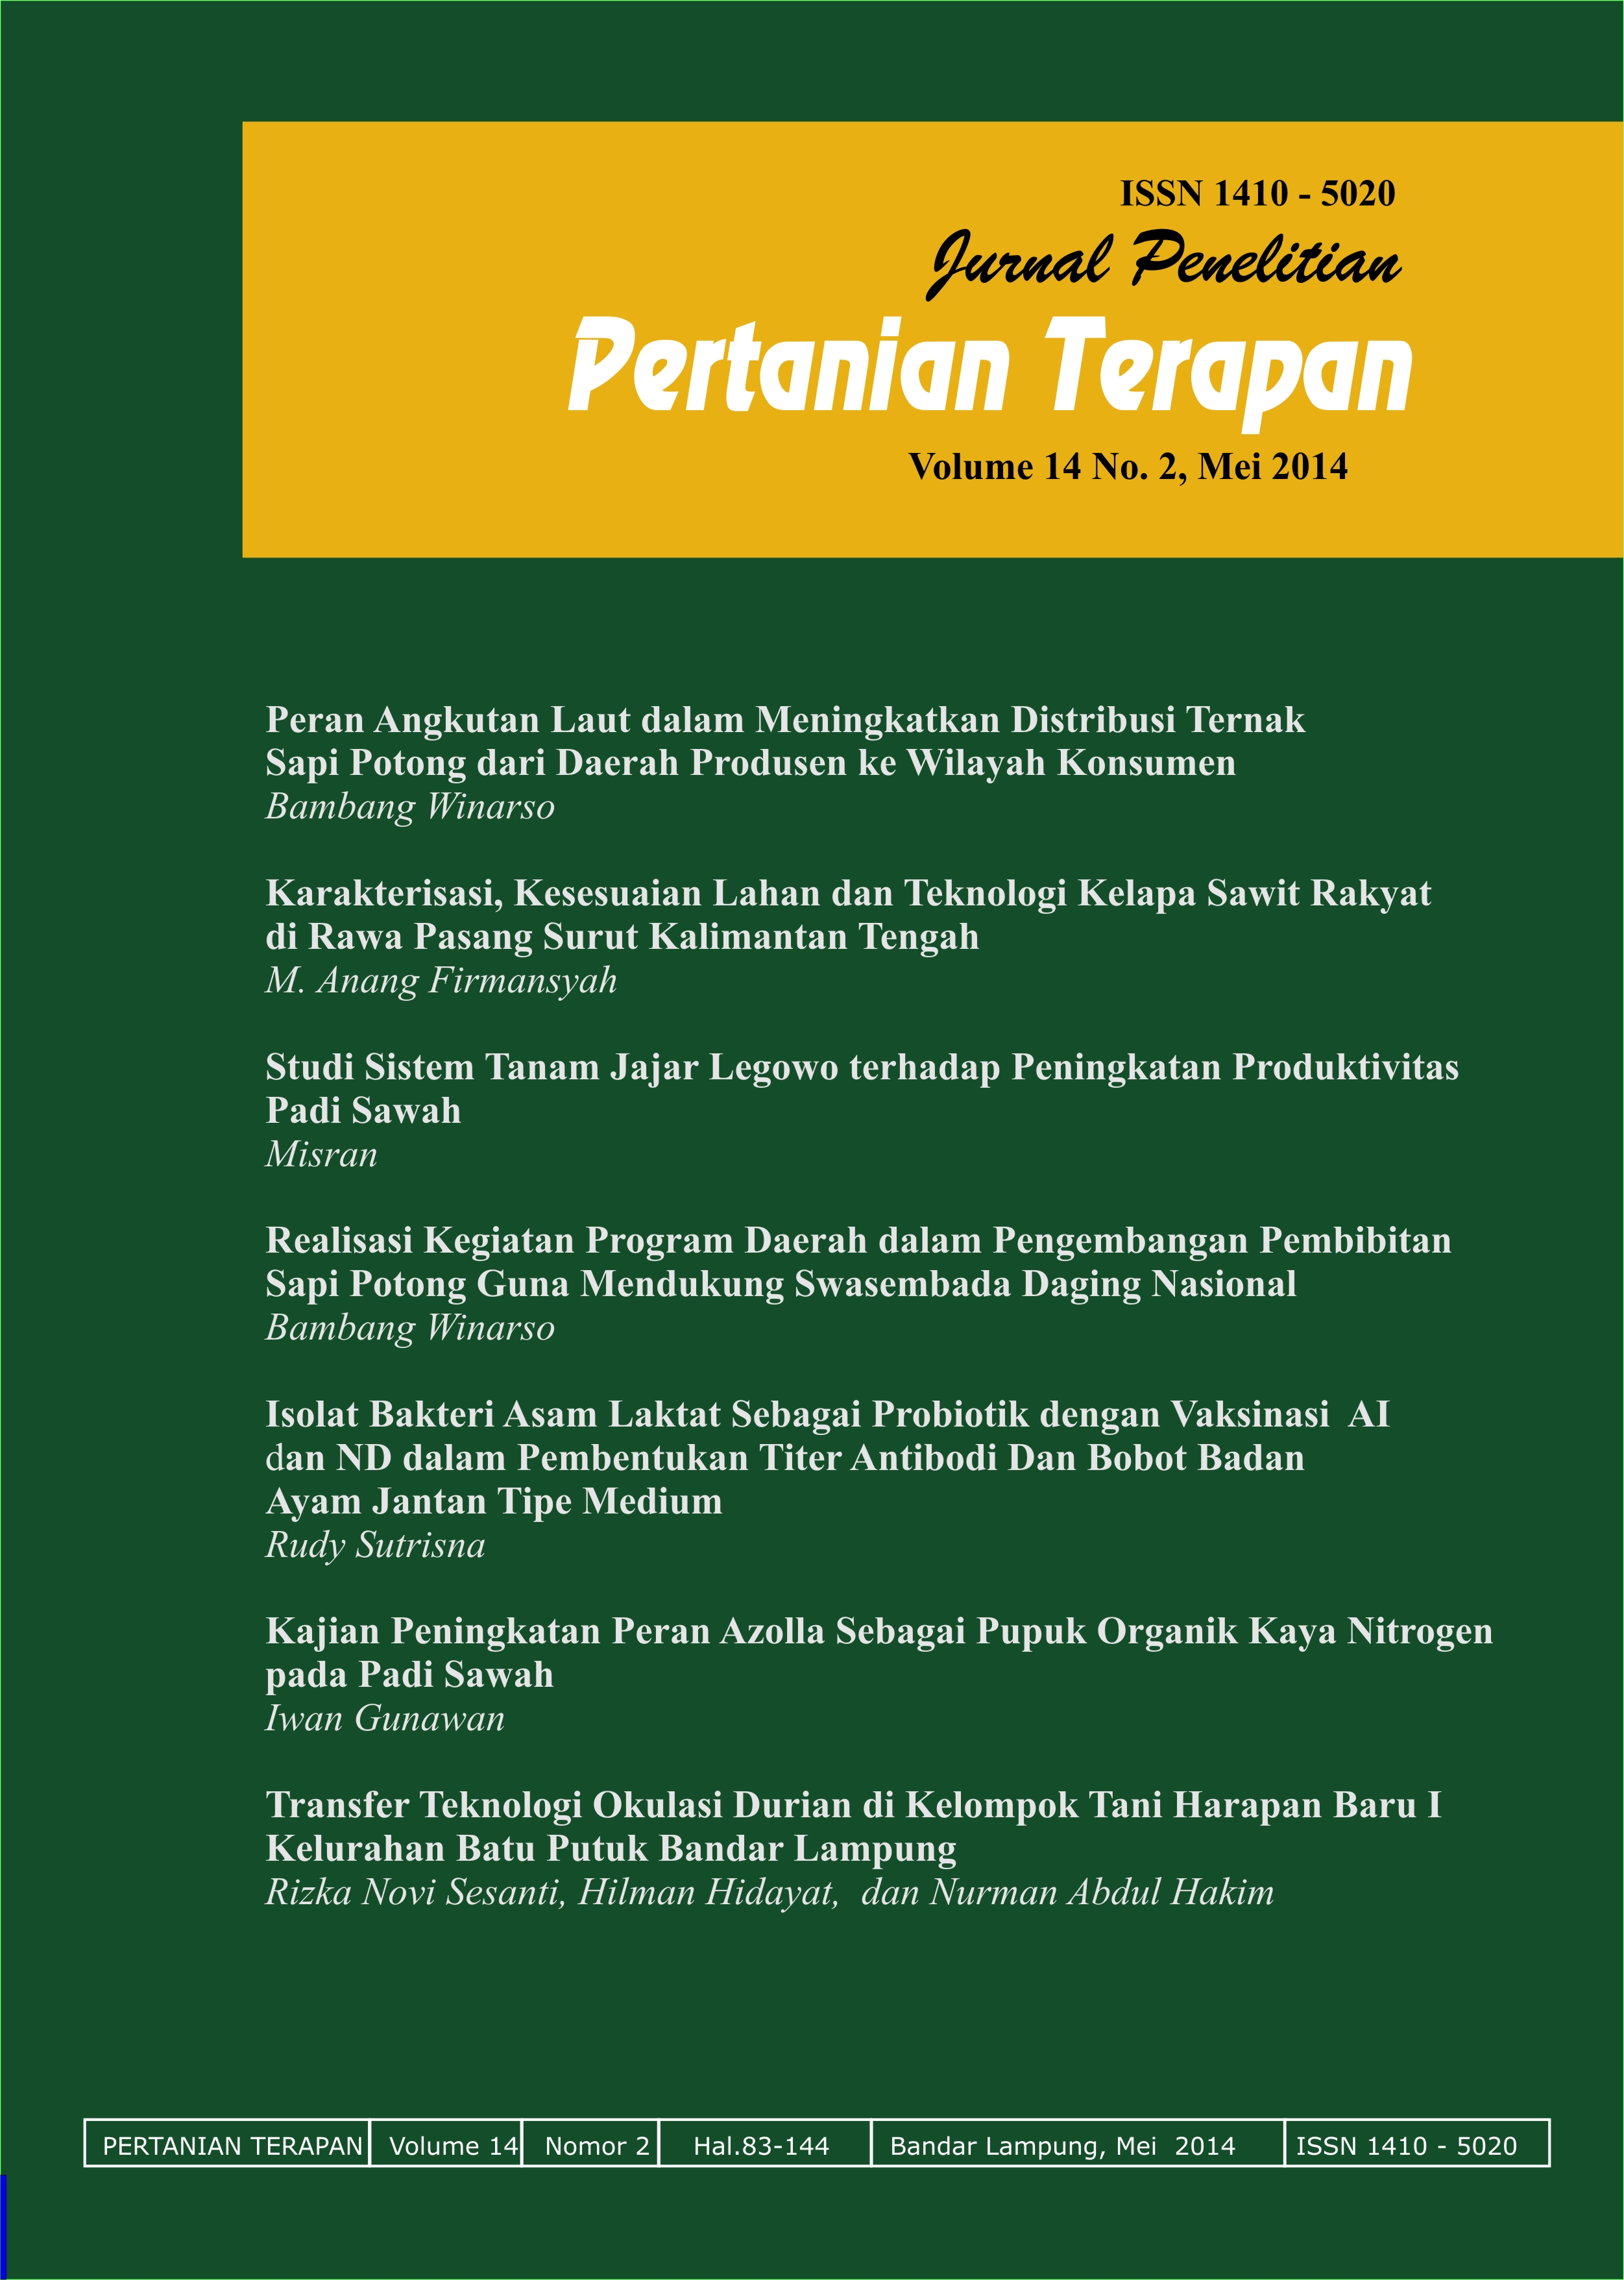 Indonesian Journal of Applied Agriculture